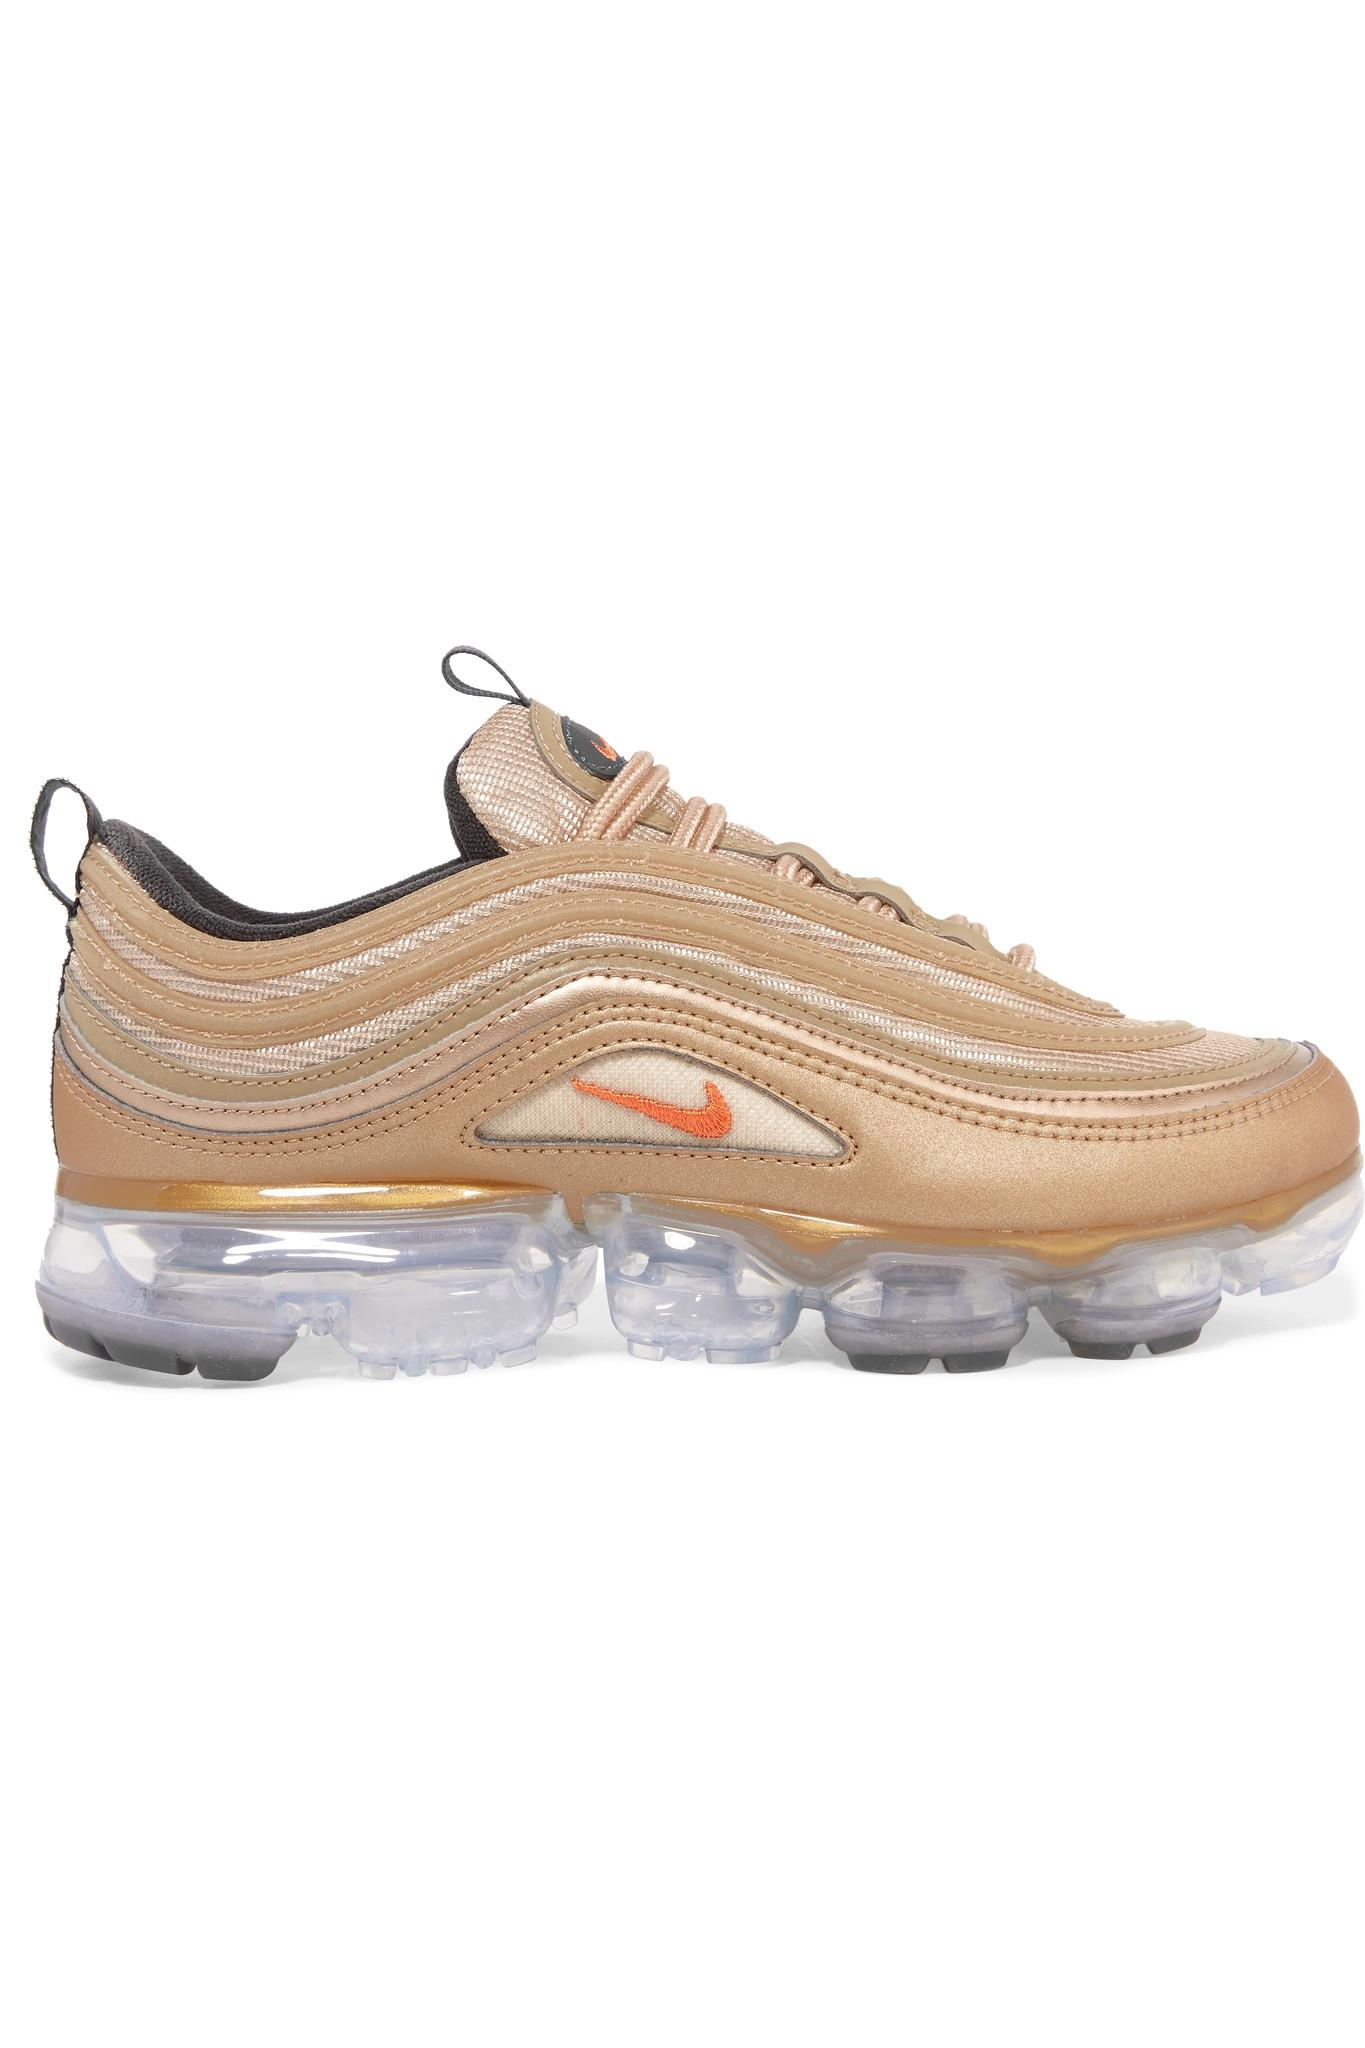 c51a1e339655 Nike. Women s Air Vapormax 97 Metallic Faux Leather And Mesh Trainers